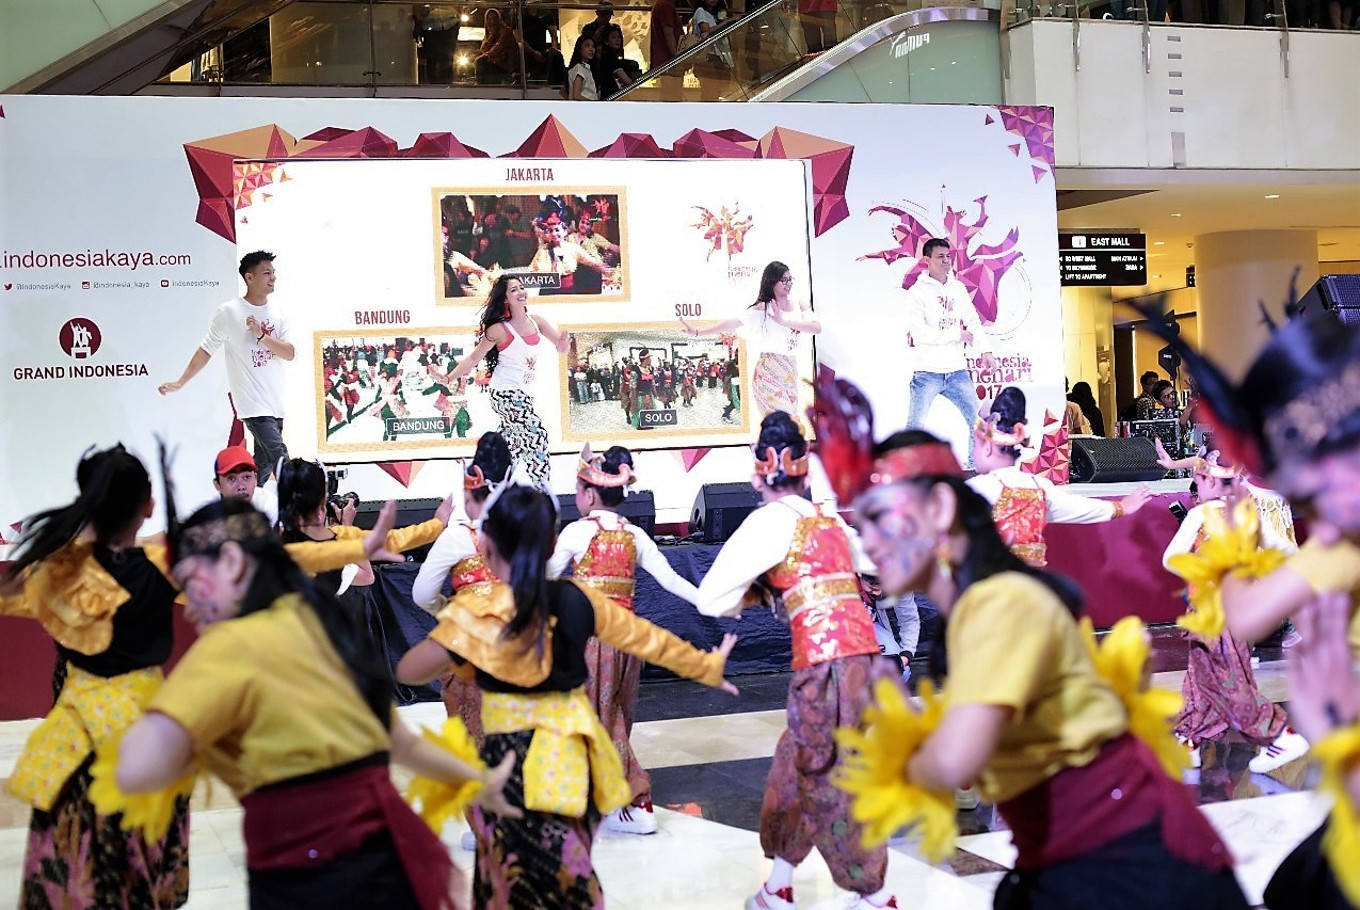 (From left to right) local actor Fero Walandouw, the event's choreographer Rosmala Sari Dewi, actress Yuki Kato and actor Marcell Darwin dance together with participants of Indonesia Menari 2017 on Sunday at Grand Indonesia mall, Central Jakarta.